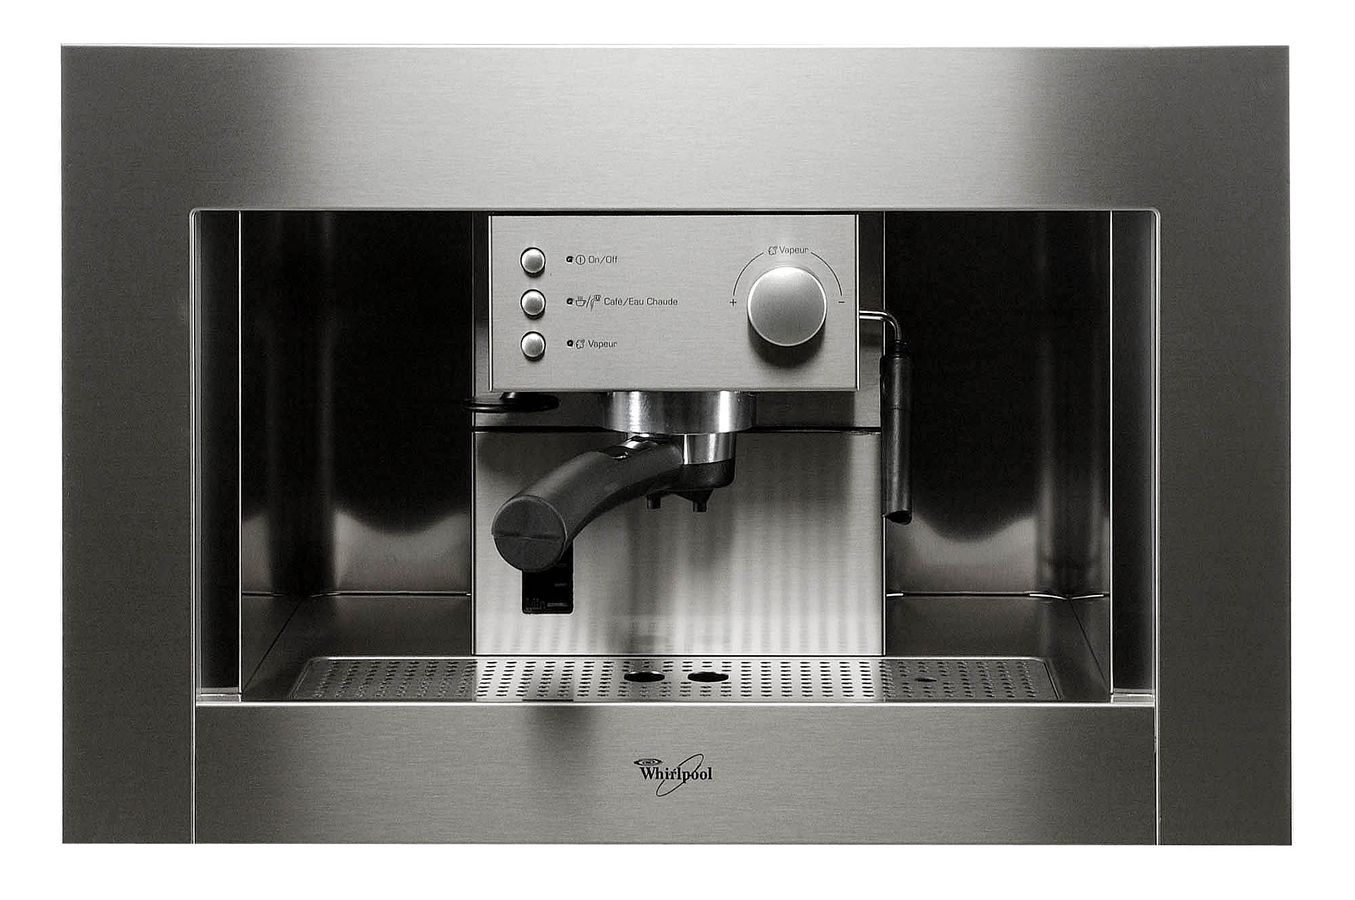 nav achat encastrable micro ondes expresso machine cafe whirlpool ace  ix inox